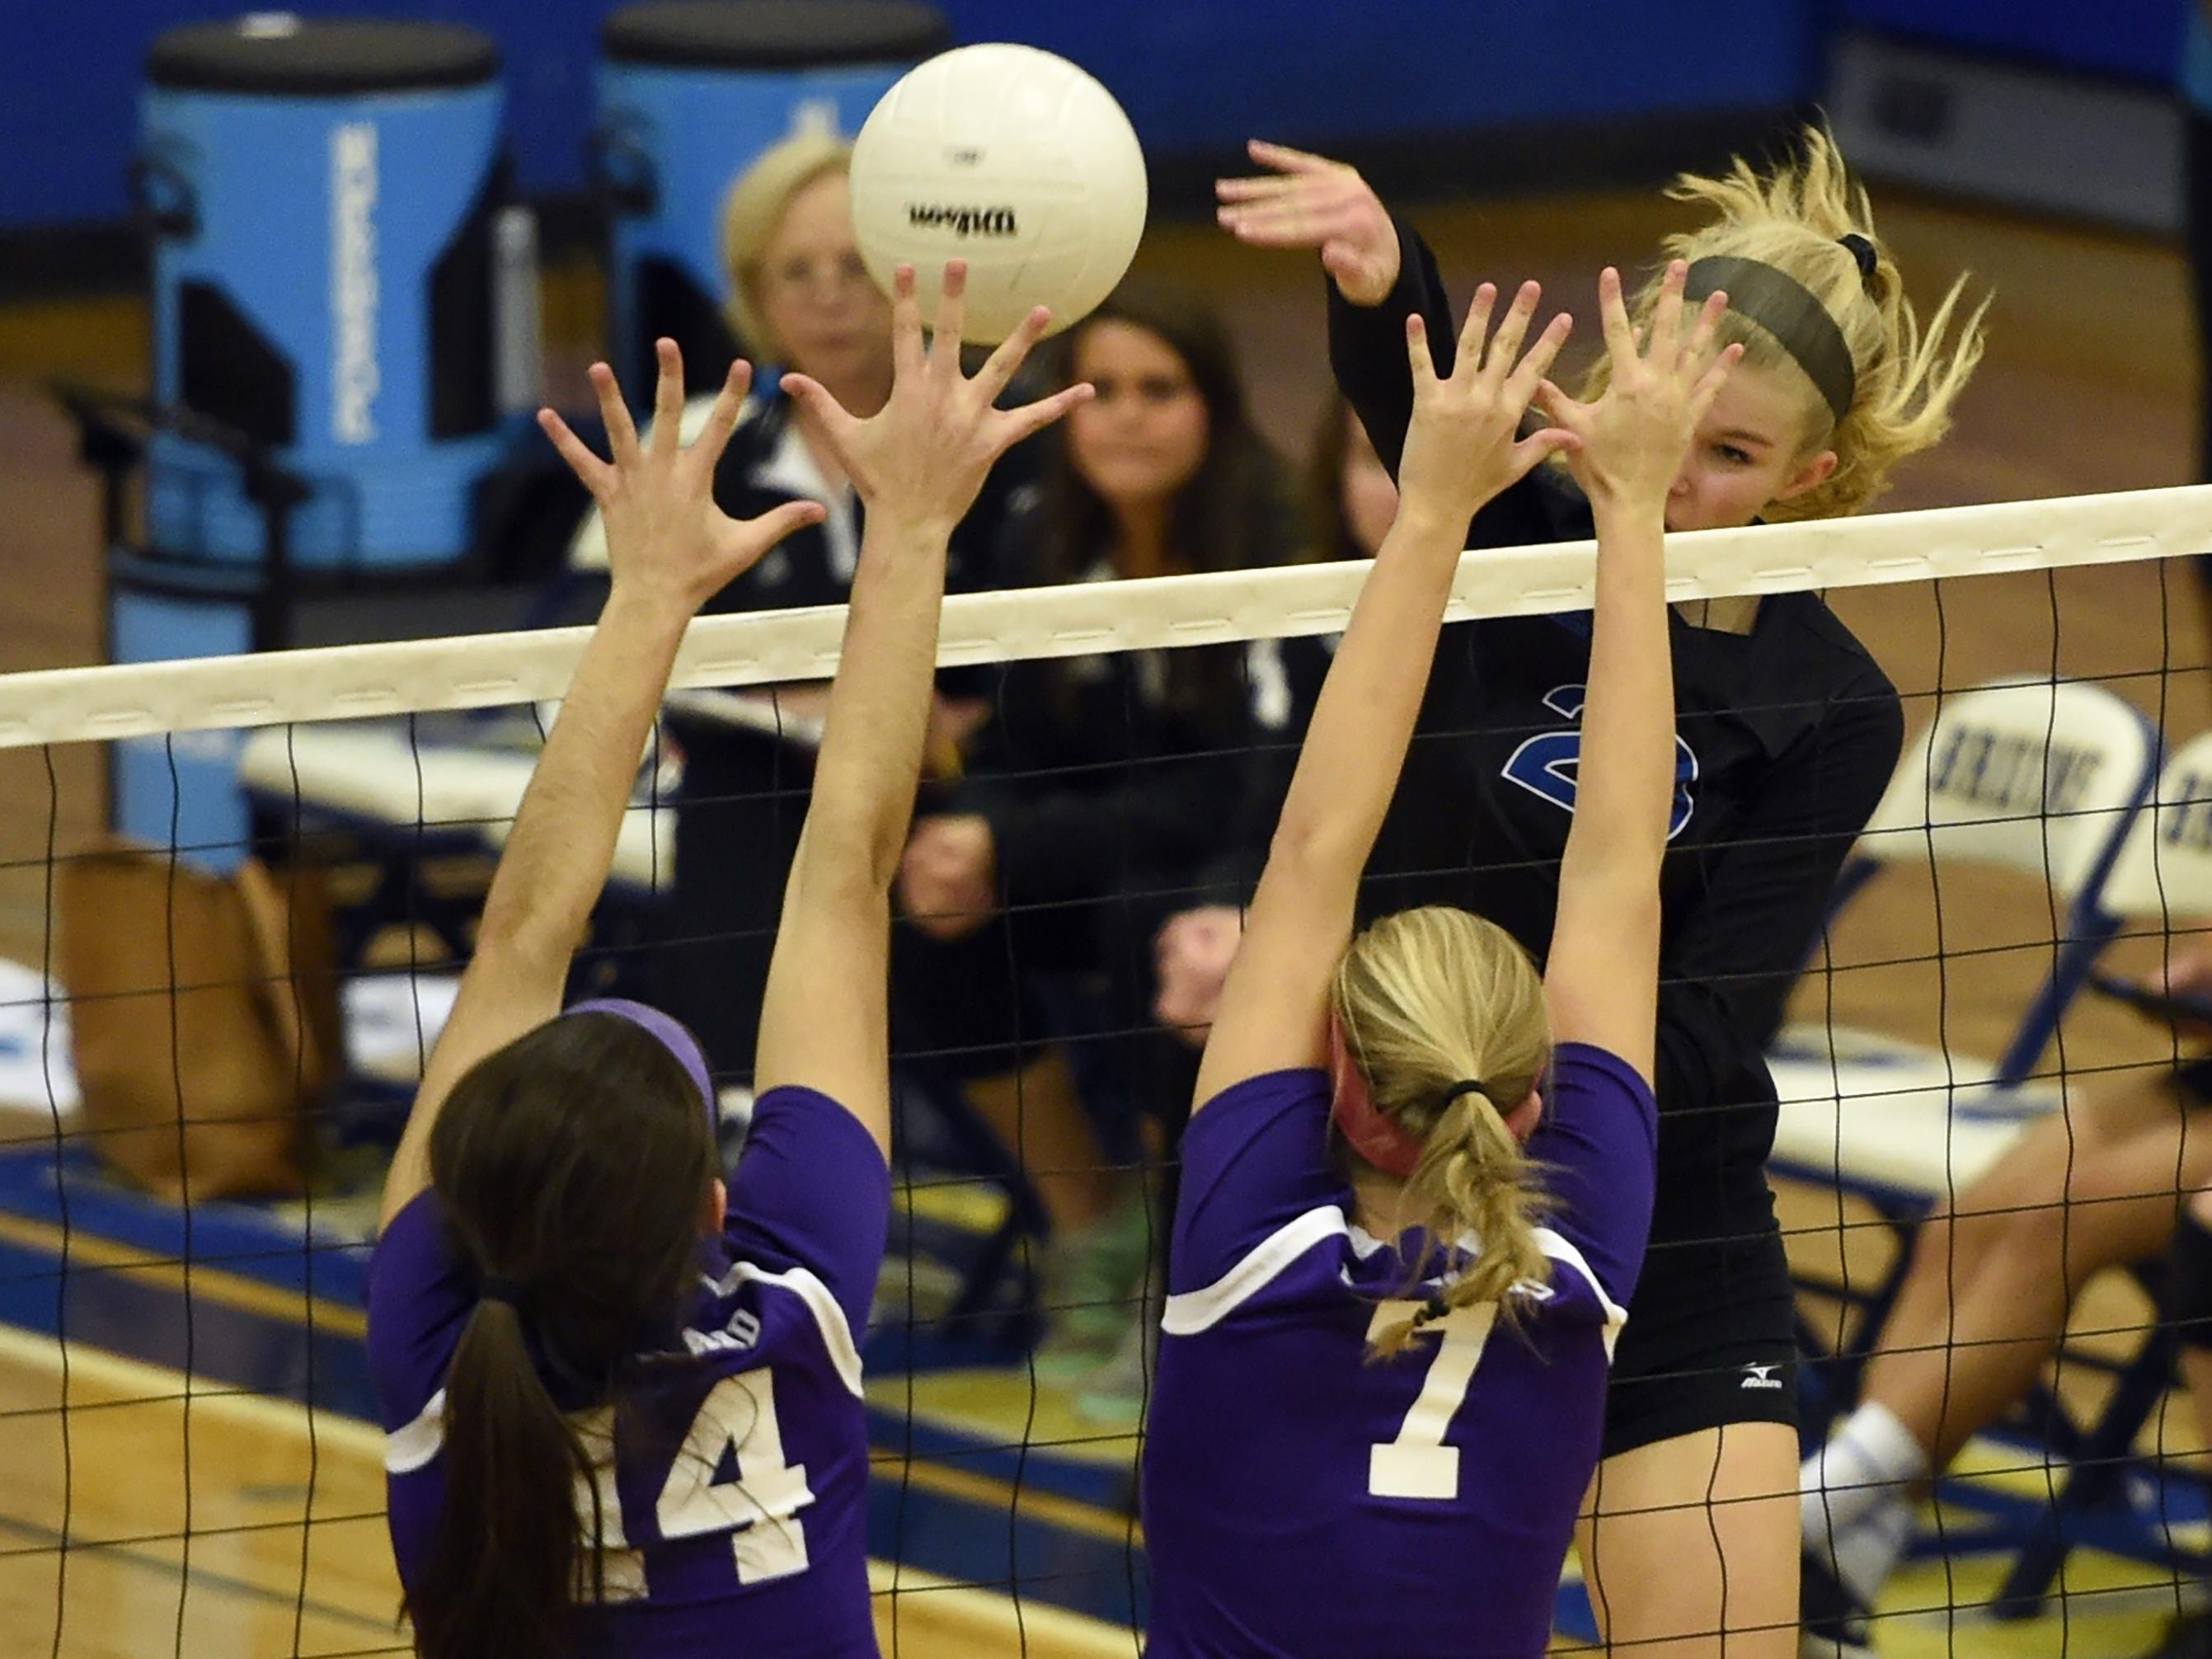 Brentwood's Garrett Joiner spikes the ball past Portland's McKenzie Trouten (14) and Sidney Minnis (7) during their match Thursday.